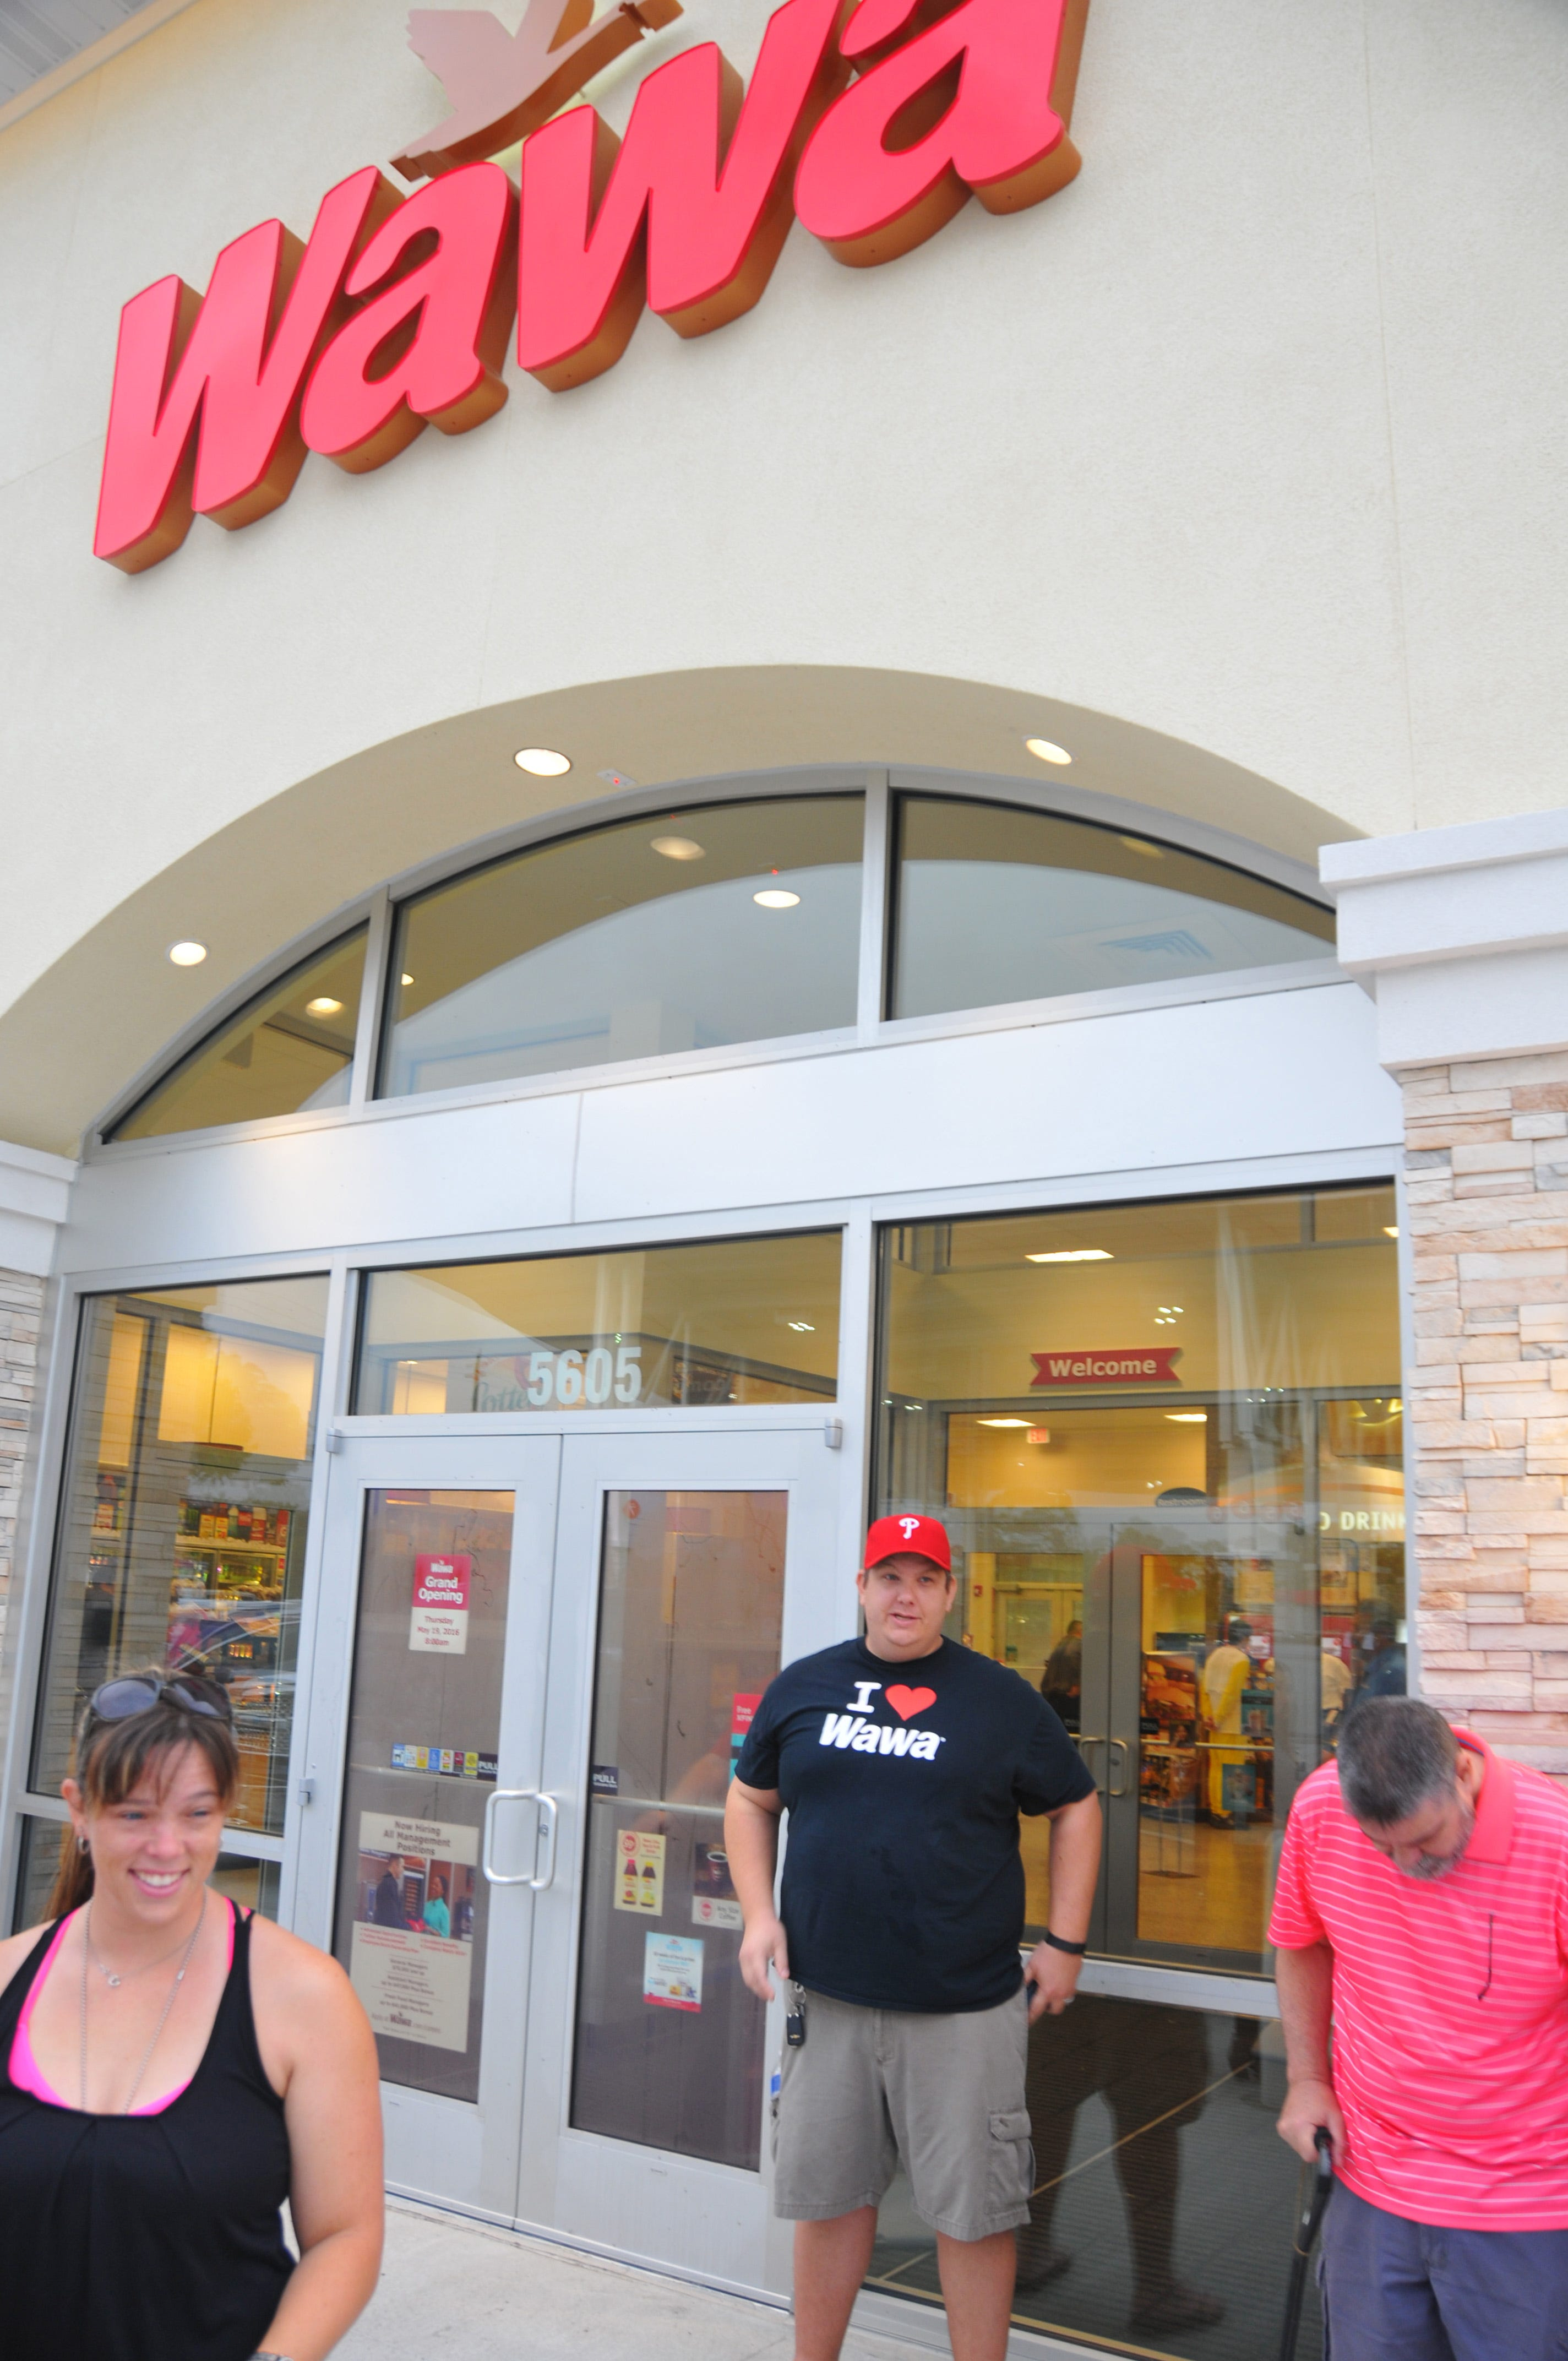 635992623909348687-Wawa-grand-opening-6 FLORIDA TODAY Business Notes: Wawa, Dr. Clevens, Titusville chamber